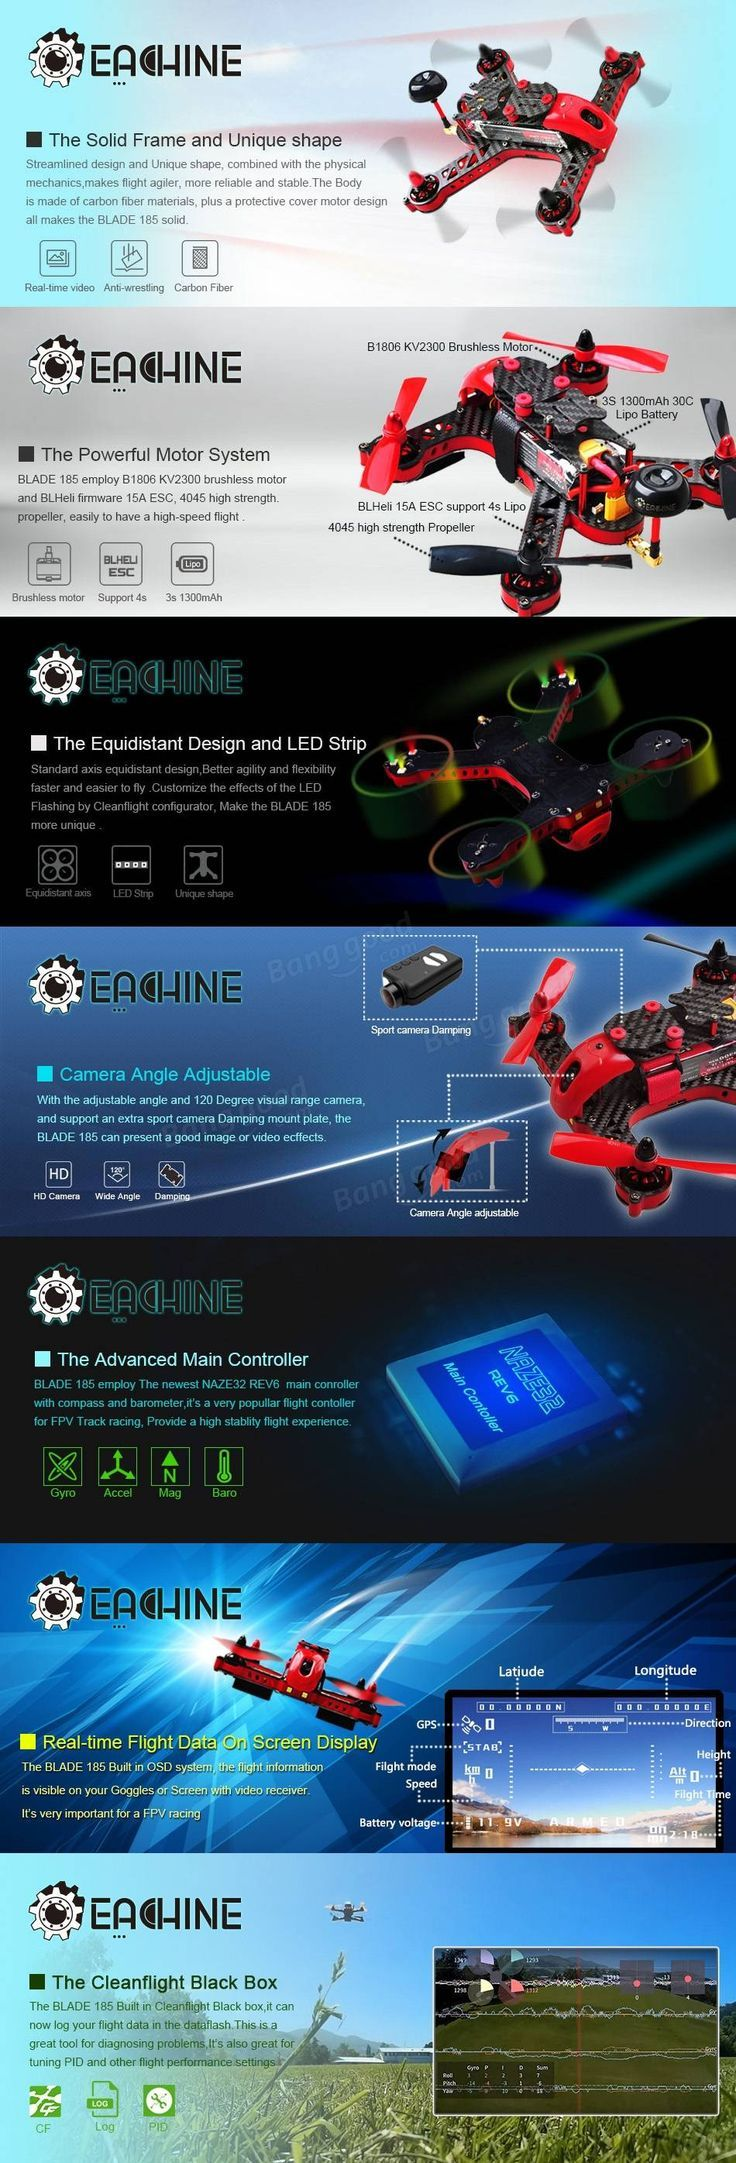 40 best                                      images on Pinterest   Drone diy  Drones and     Eachine Blade 185 FPV Racing Drone with Mini NZ GPS OSD 5 8G 40CH HD Camera